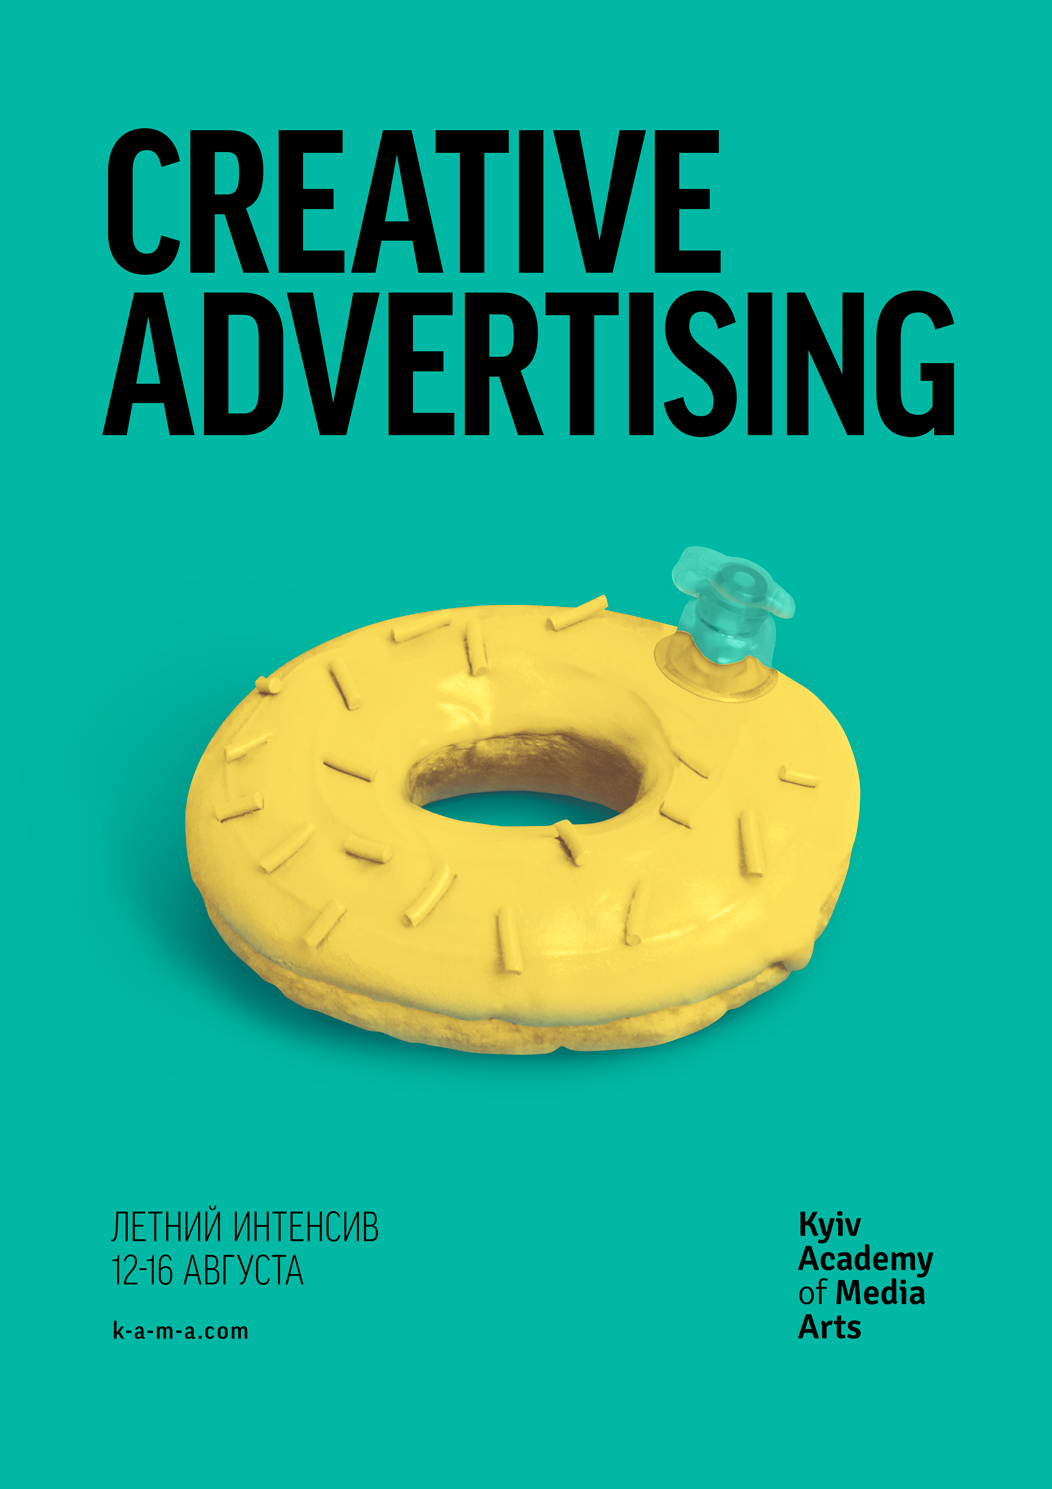 CREATIVE-ADVERTISING-WEB.png